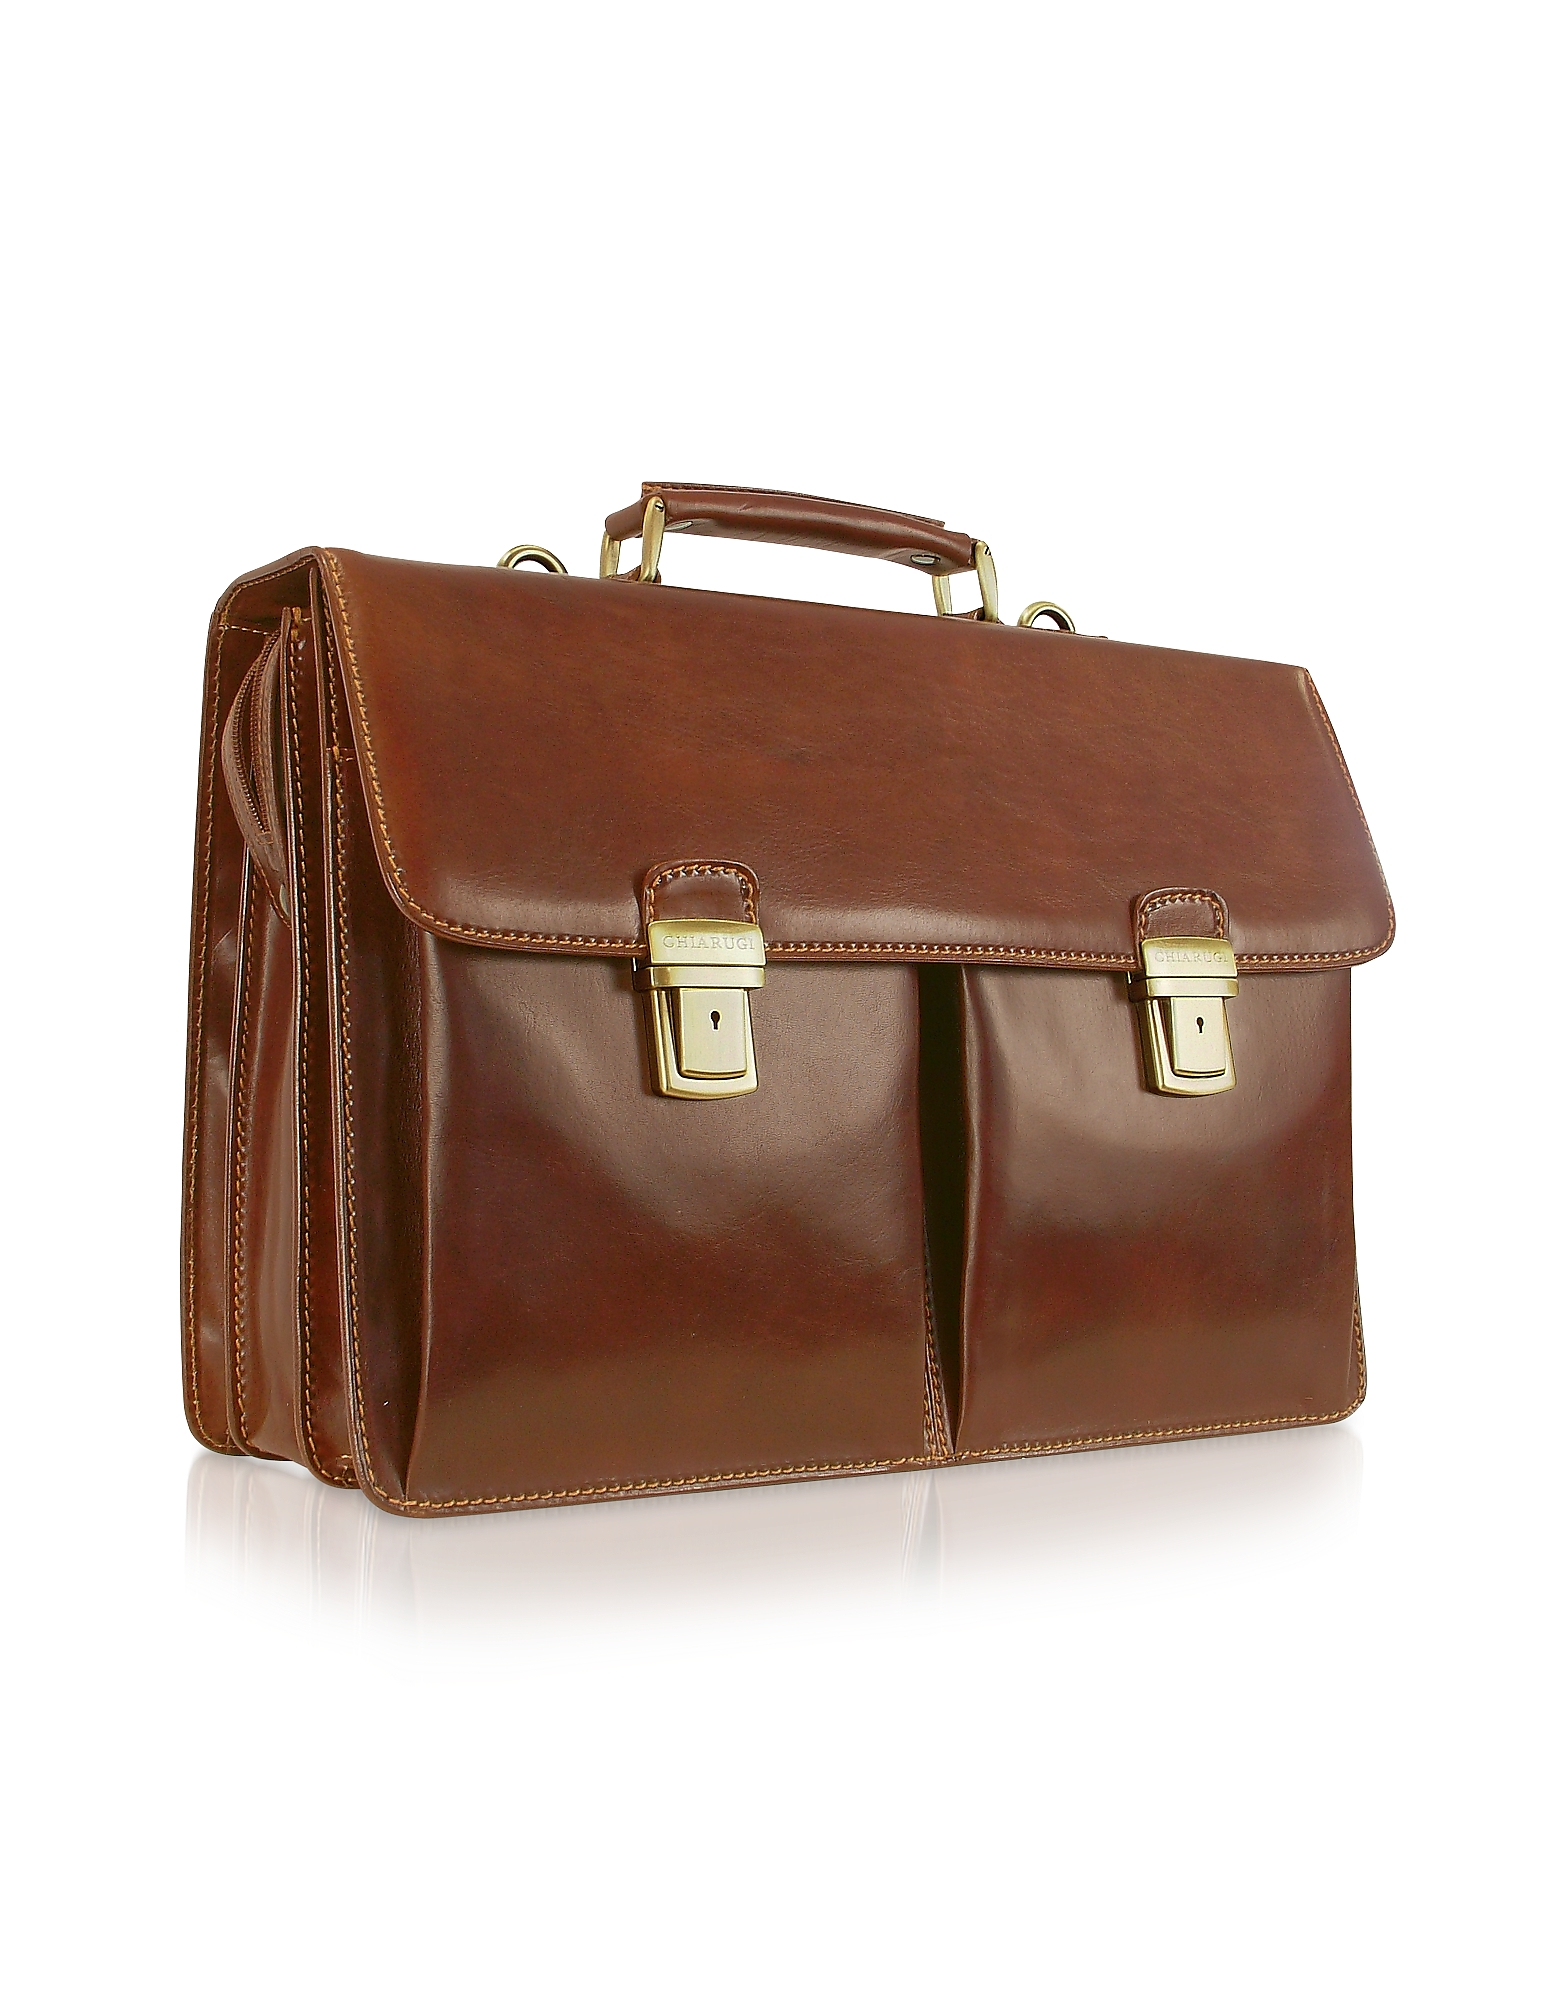 Chiarugi Briefcases, Handmade Brown Genuine Italian Leather Briefcase